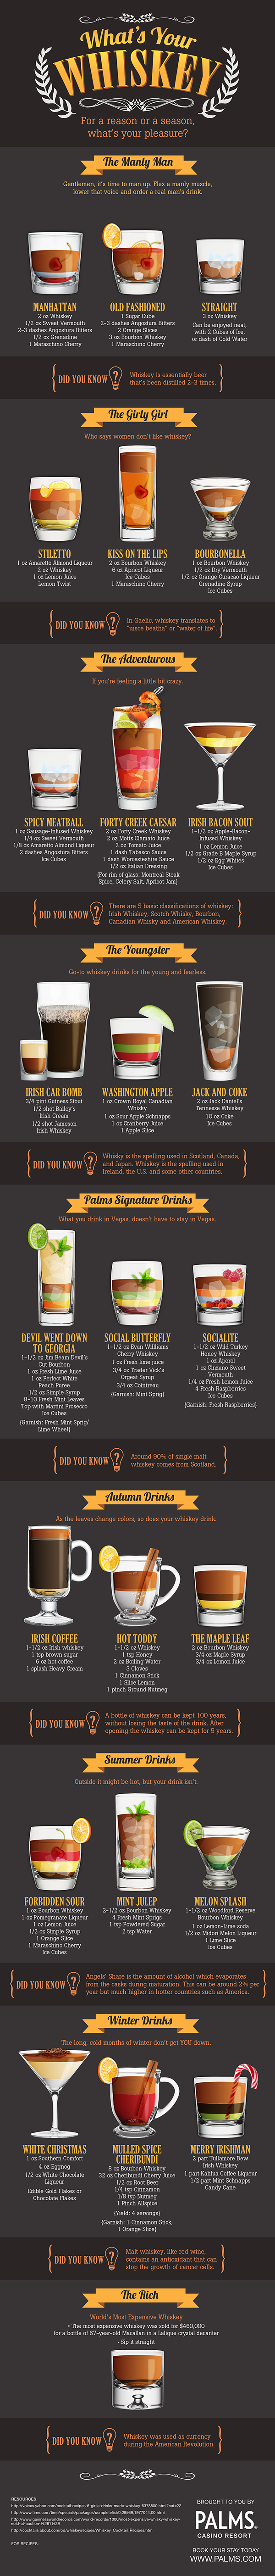 Created whiskey infographic for IMI's client Palm's Casino & Resort on the various whiskeys and types of whiskey drinks for all - including their specialty drinks.